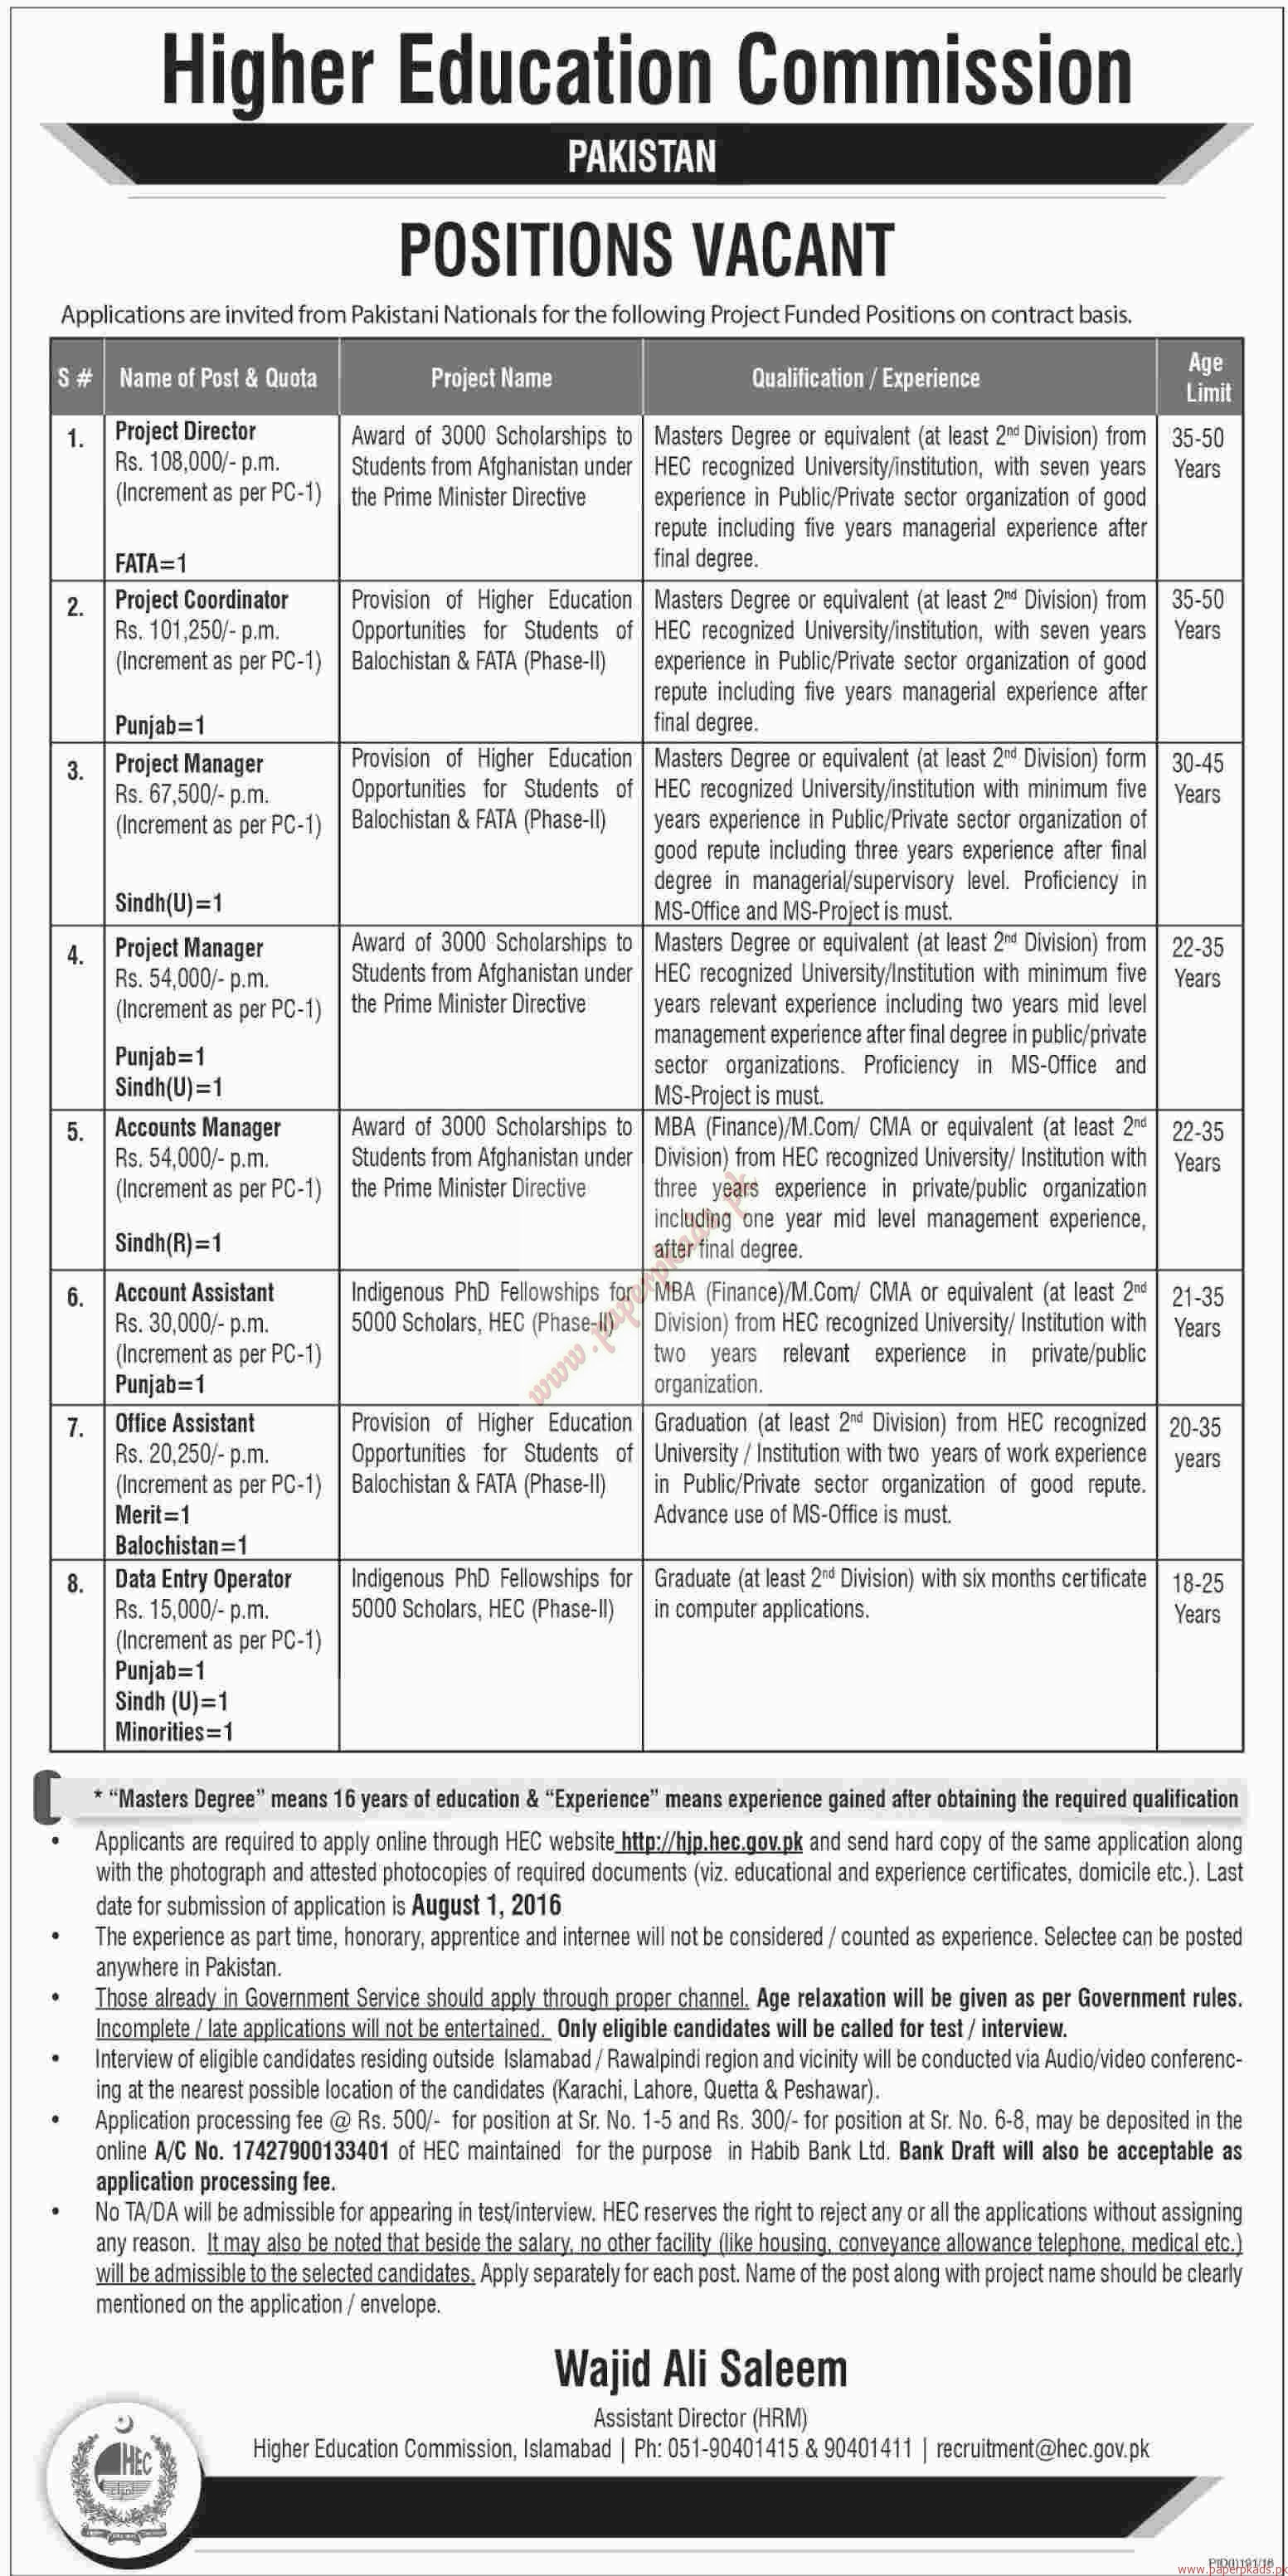 Higher Education Commission Jobs 1 - Dawn Jobs ads 17 July 2016 ...